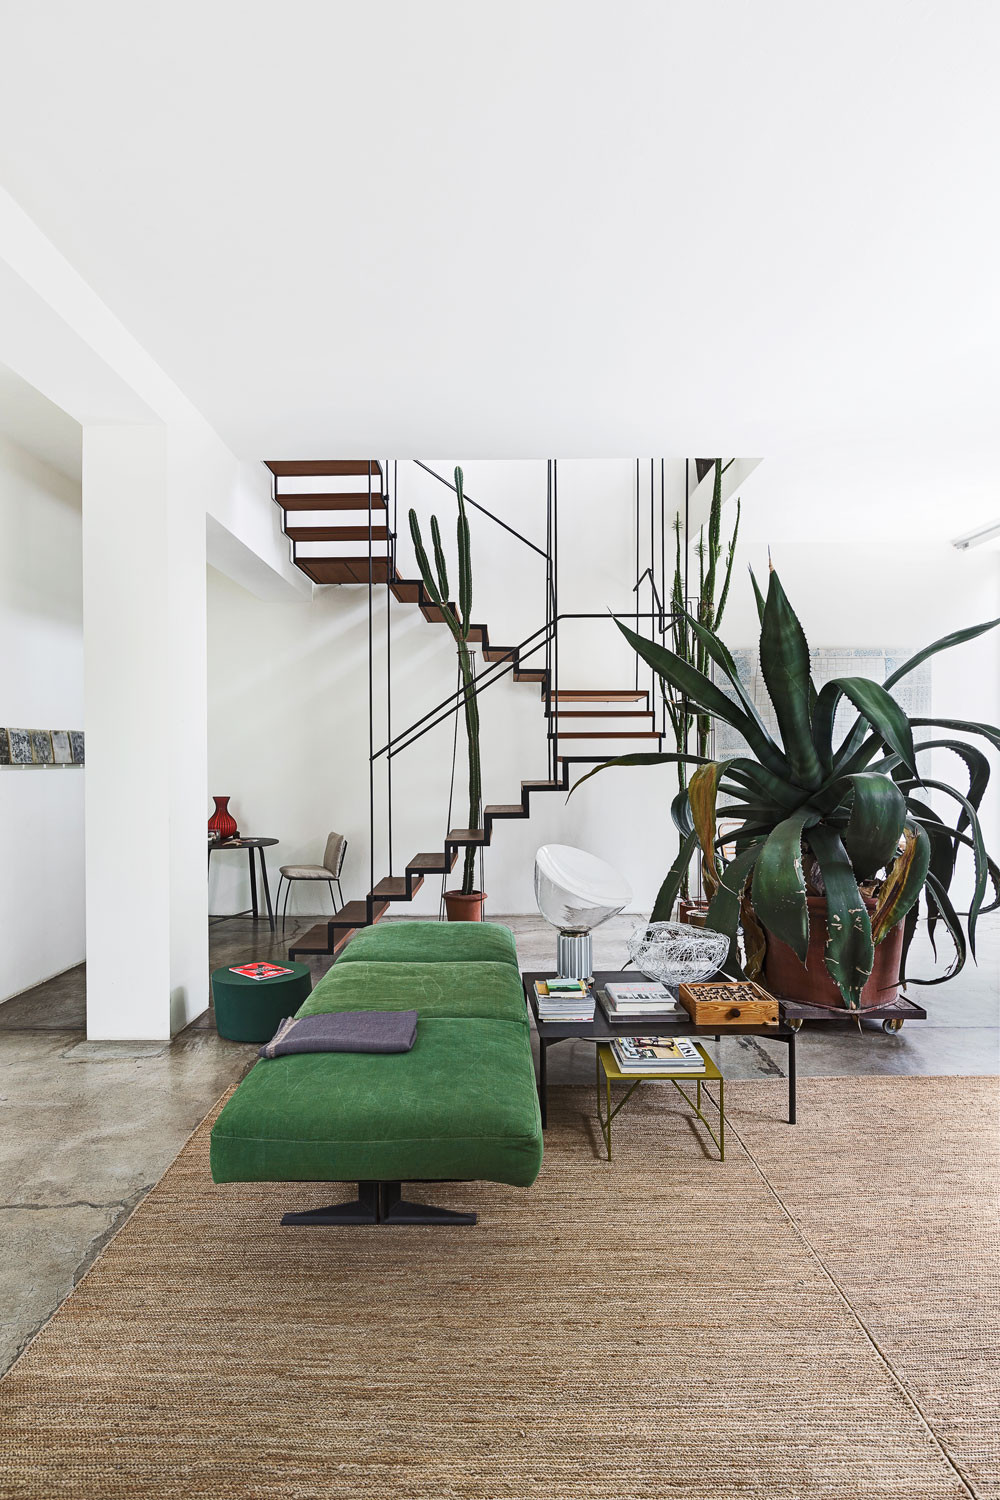 Oracle Fox, Sunday Sanctuary, prerequisites, industrial interior, green, cement, large, interior plants, giant cactus, mid century interior, lounge room,